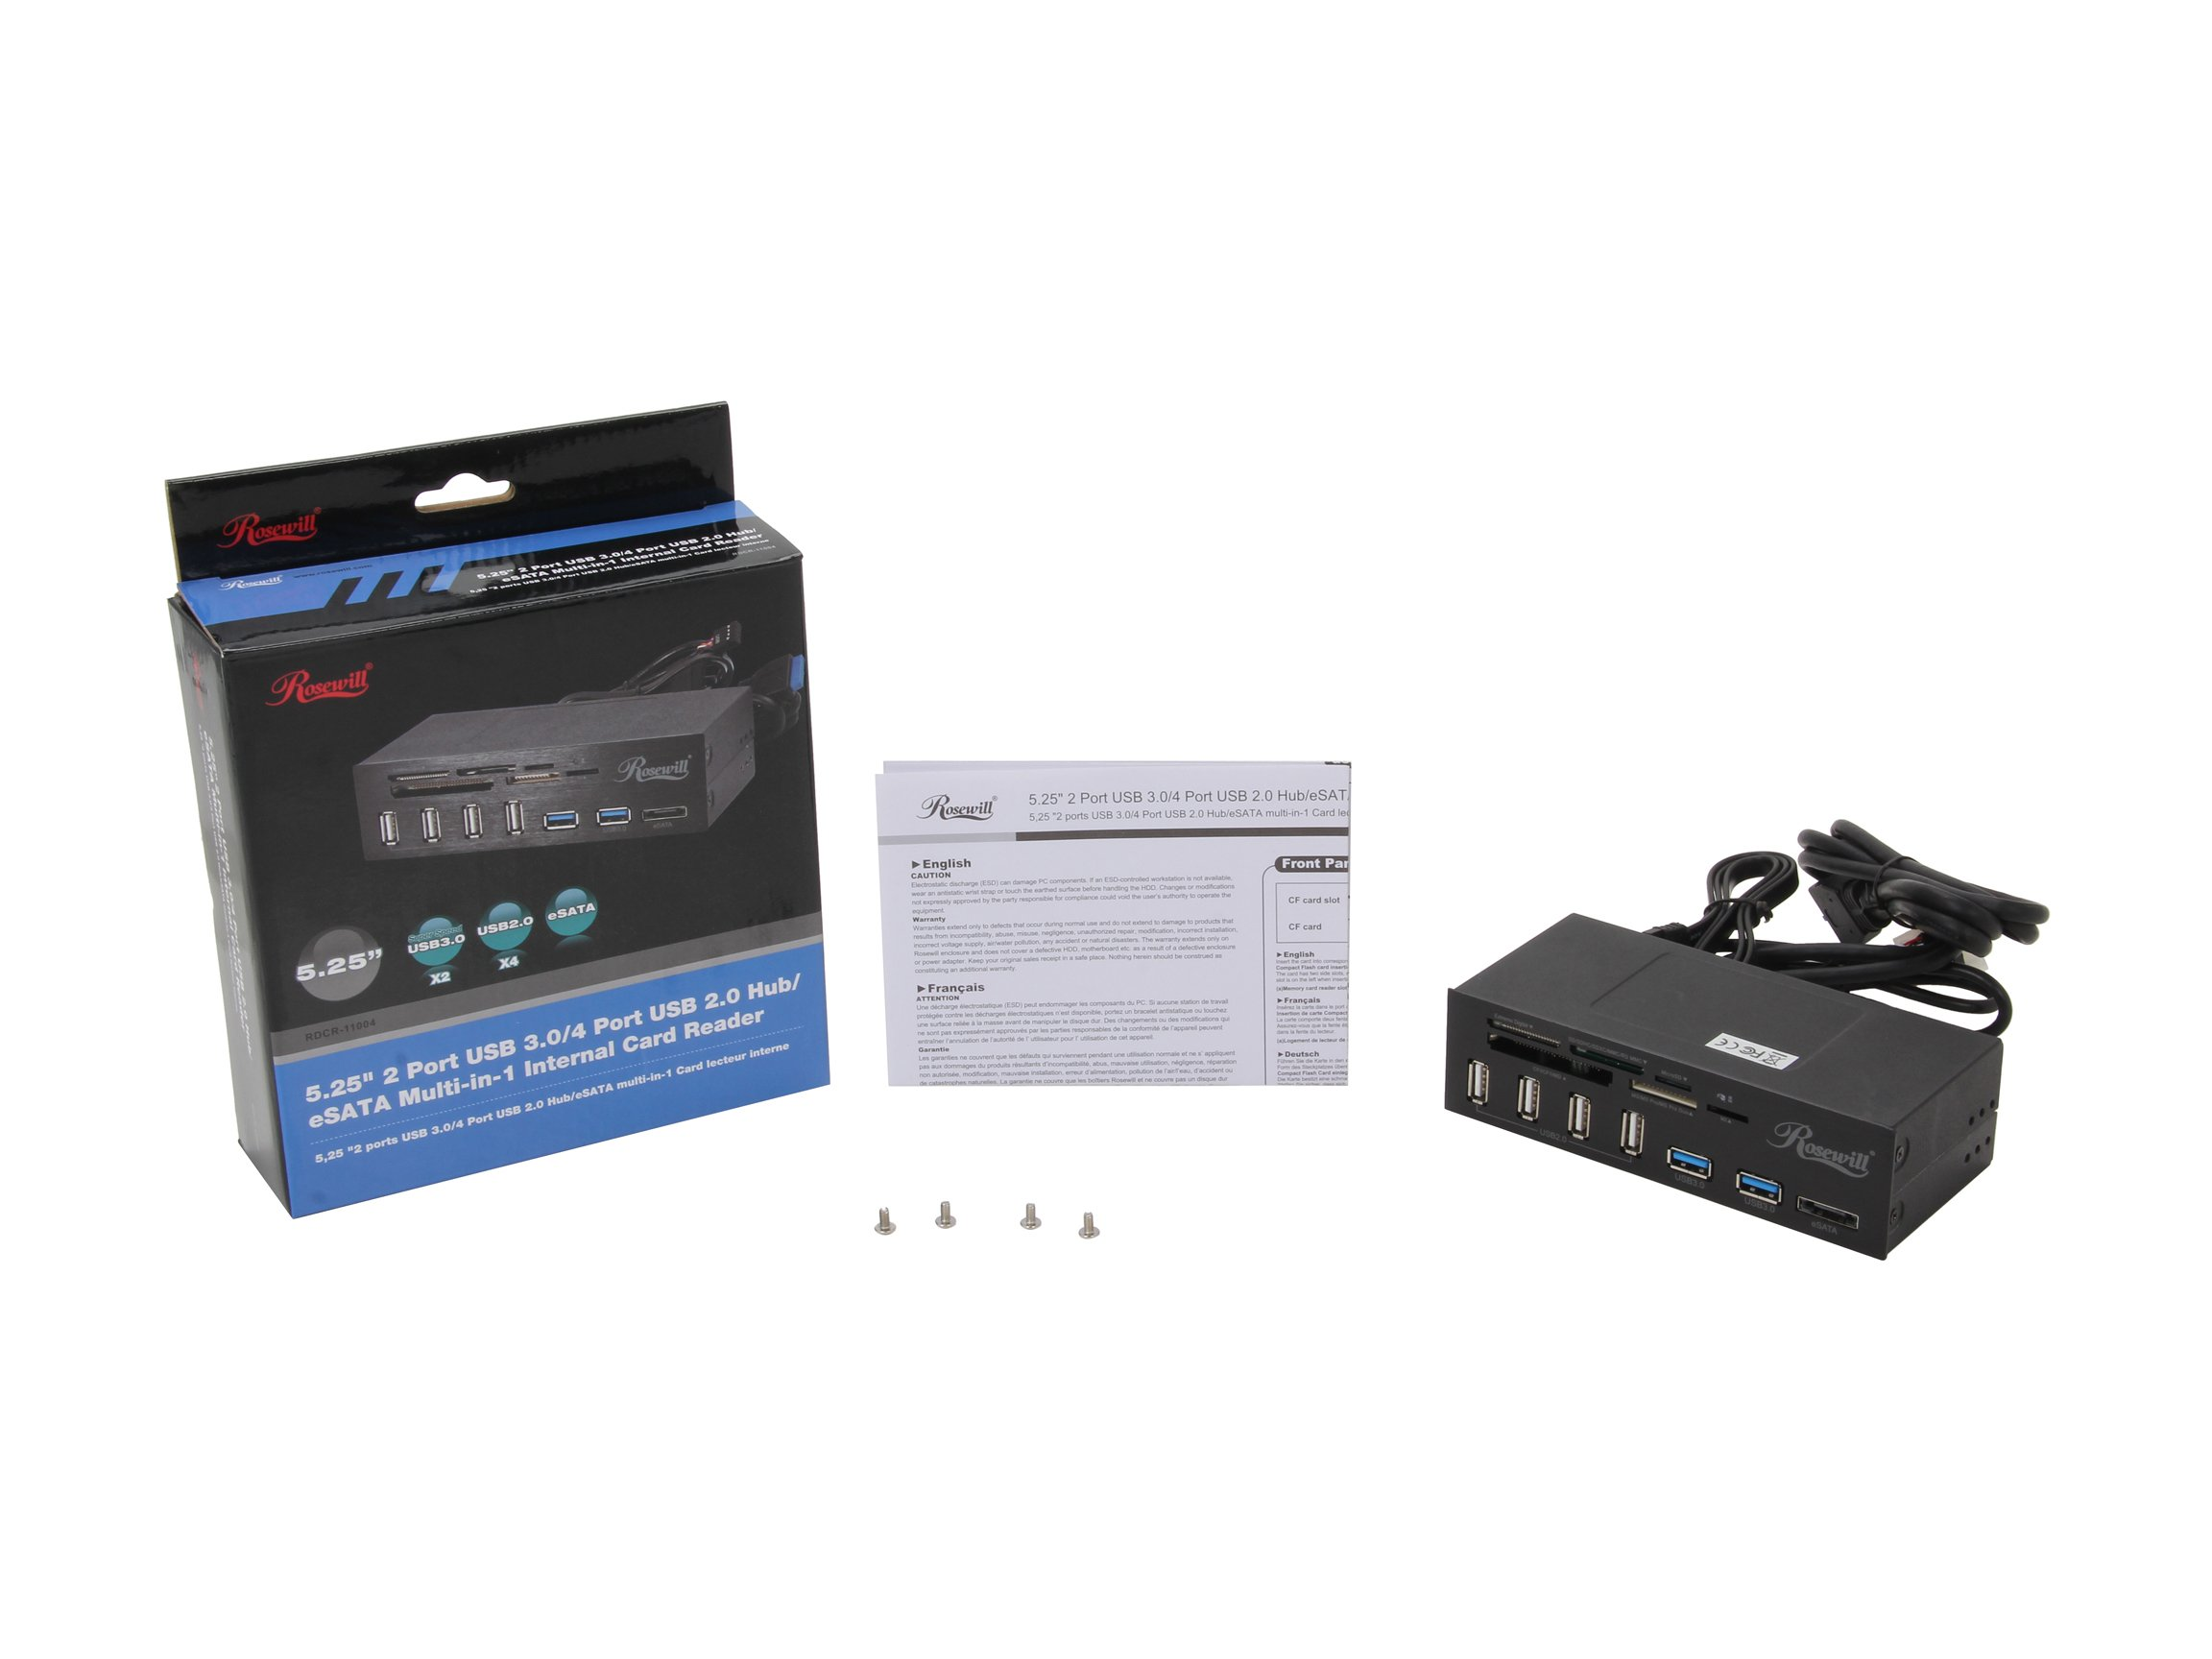 Rosewill 2-Port USB 3.0 4-Port USB 2.0 Hub eSATA Multi-In-1 Internal Card Reader with USB 3.0 Connector (RDCR-11004) by Rosewill (Image #5)